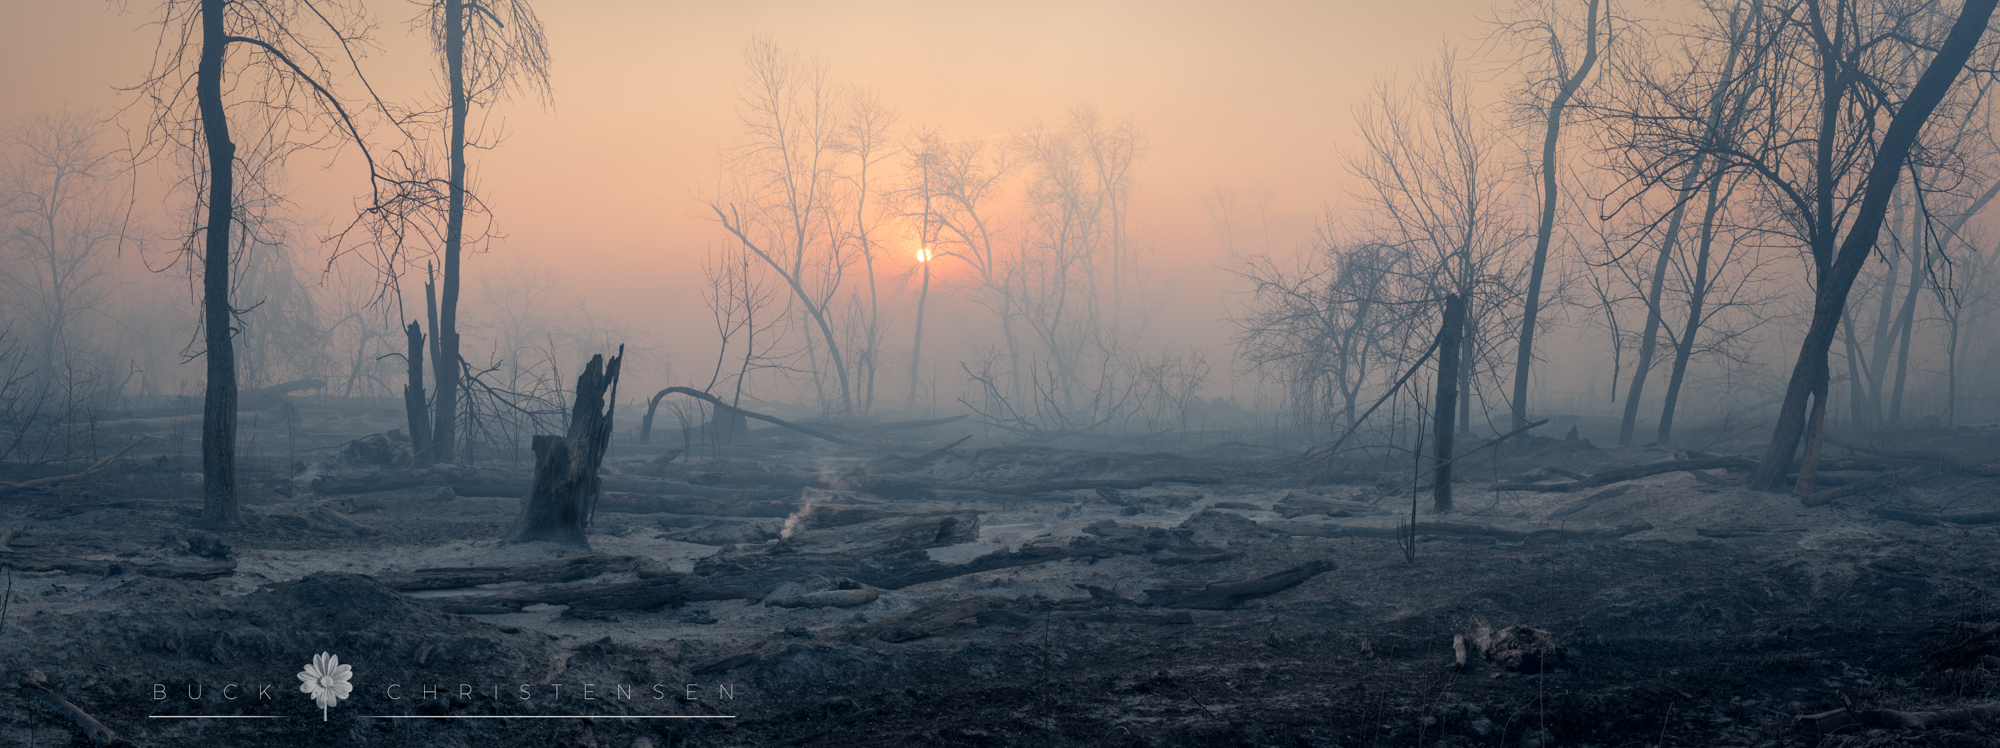 Aftermath of the April 2018 wildfire along the riverfront in Council Bluffs, Iowa, from the Western Historic Trails Center to the Veterans Memorial Bridge.